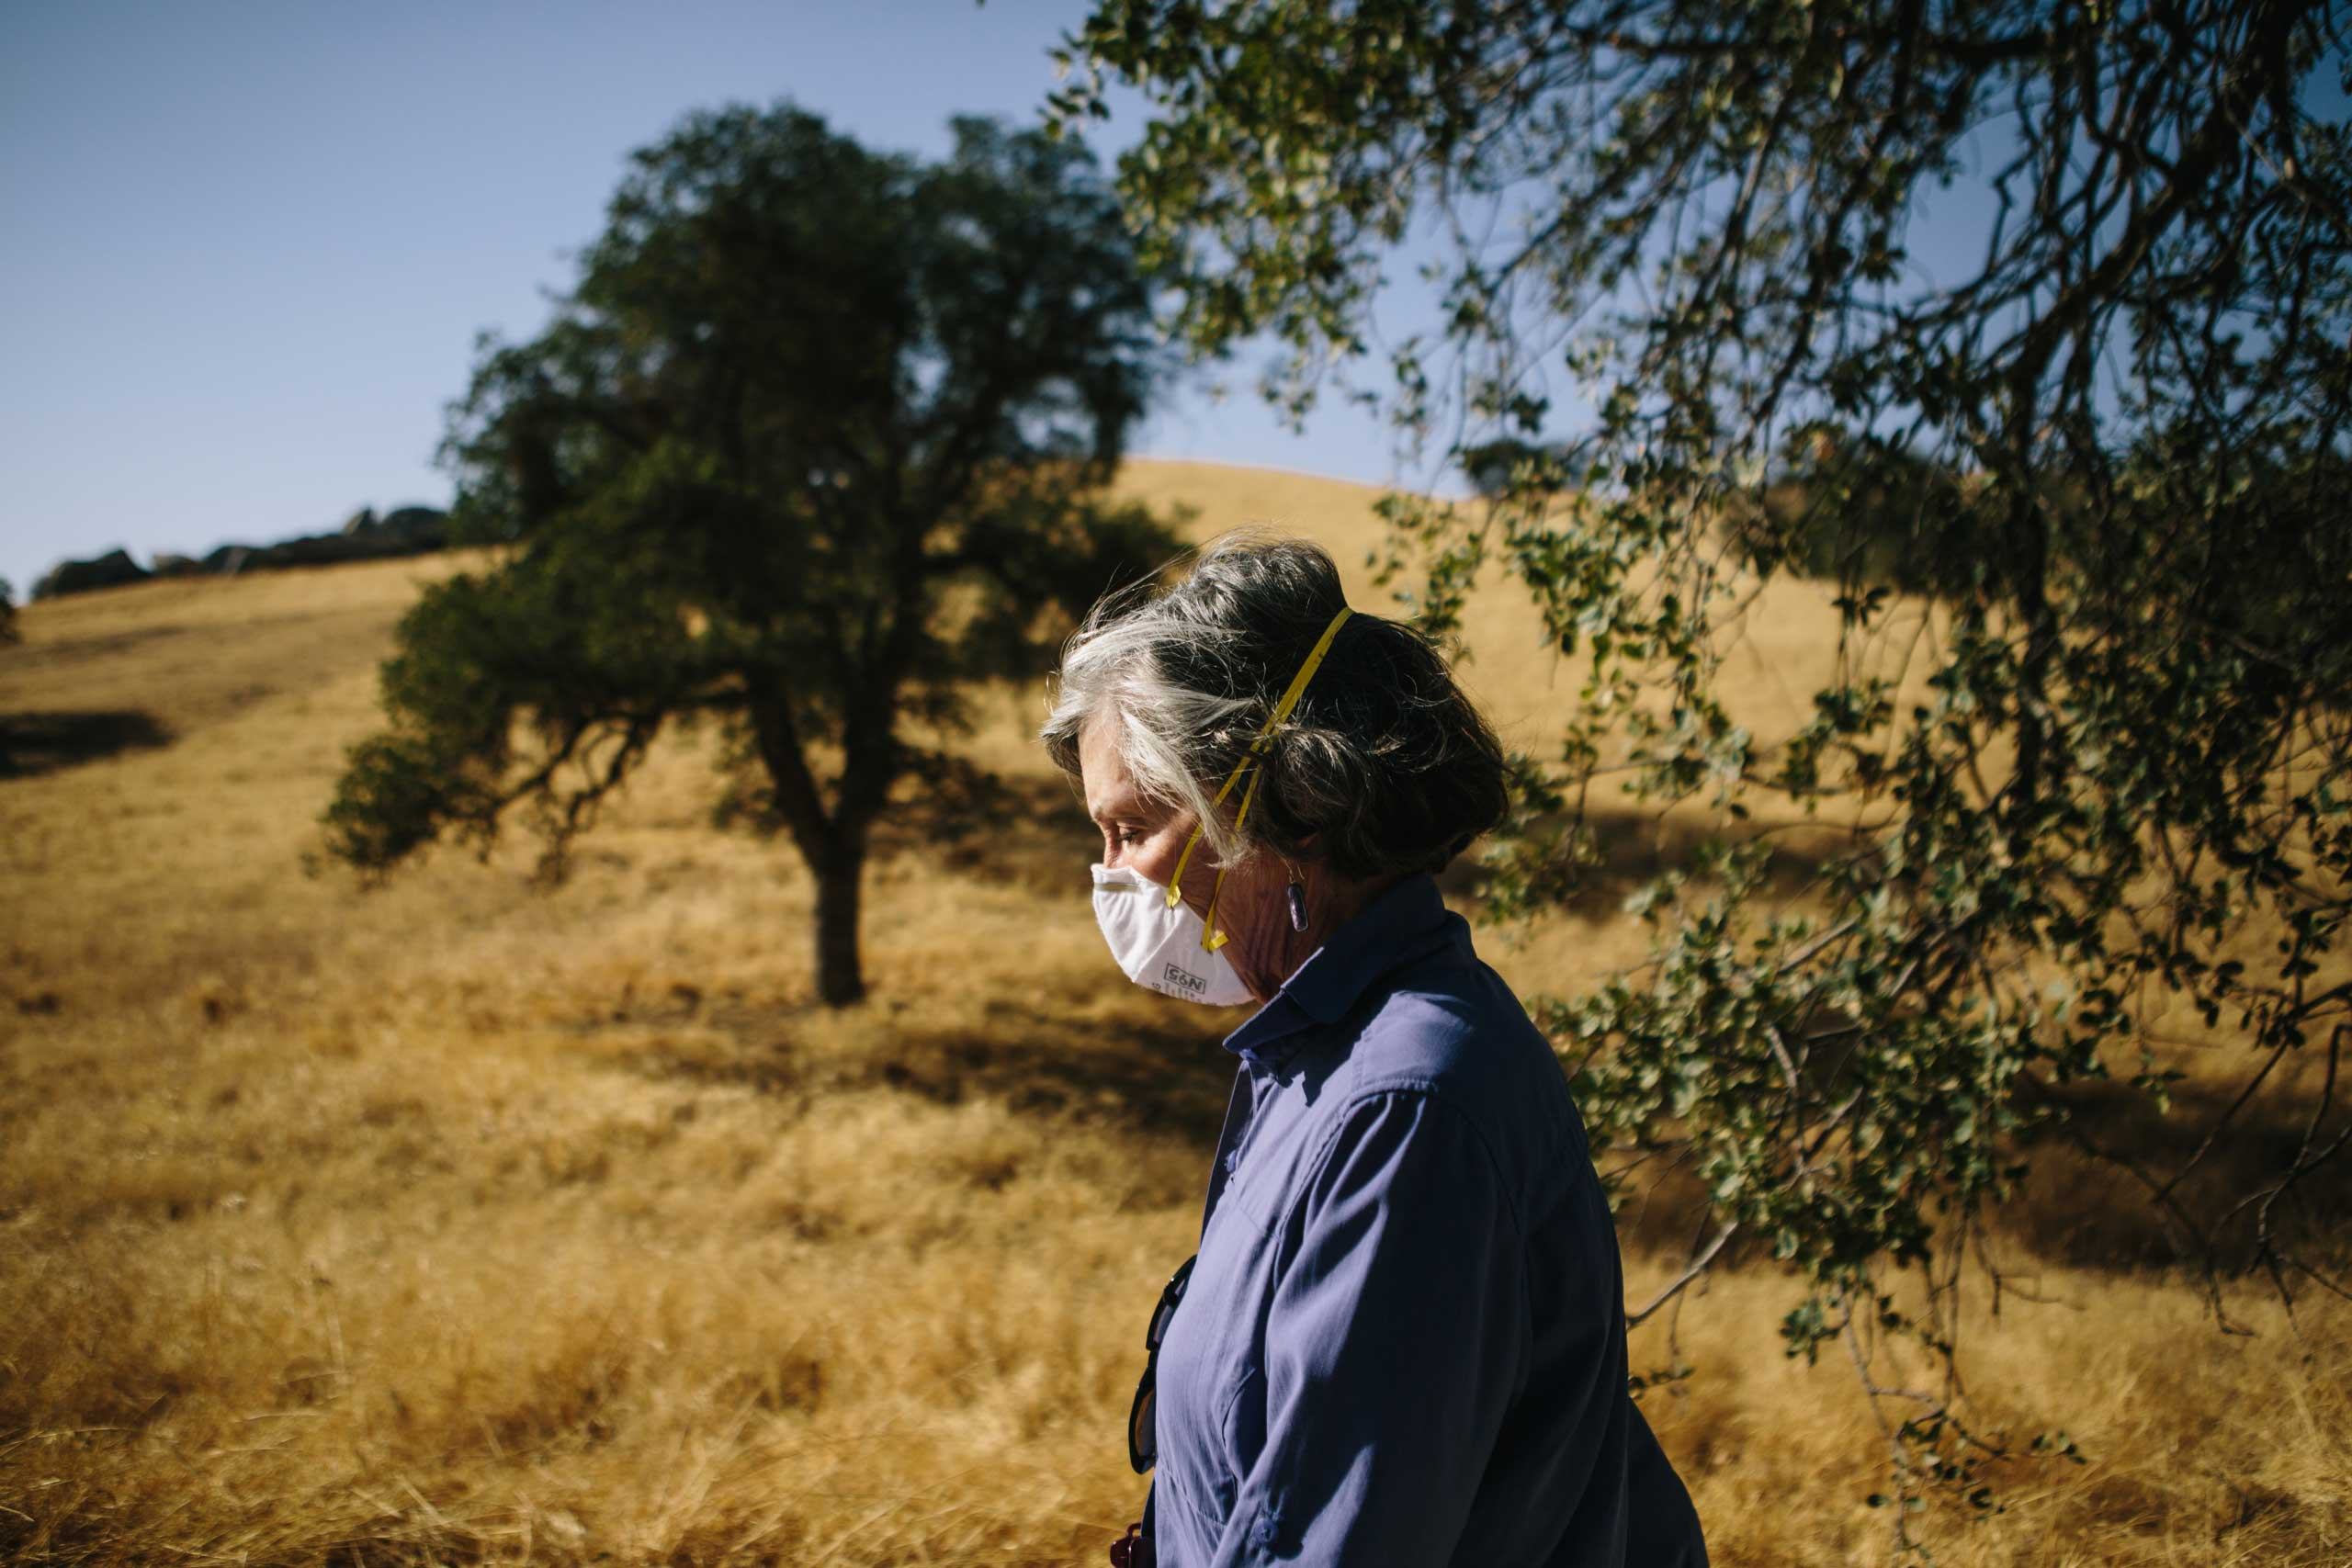 Lucy Clark, 72, lives in the foothills north of Bakersfield. Her home sits at 2200 feet, which is about the elevation where the visible layer of smog begins to hang in the air. Because of this, Clark, who suffers from asthma, wears a mask every day she walks out to get the mail.